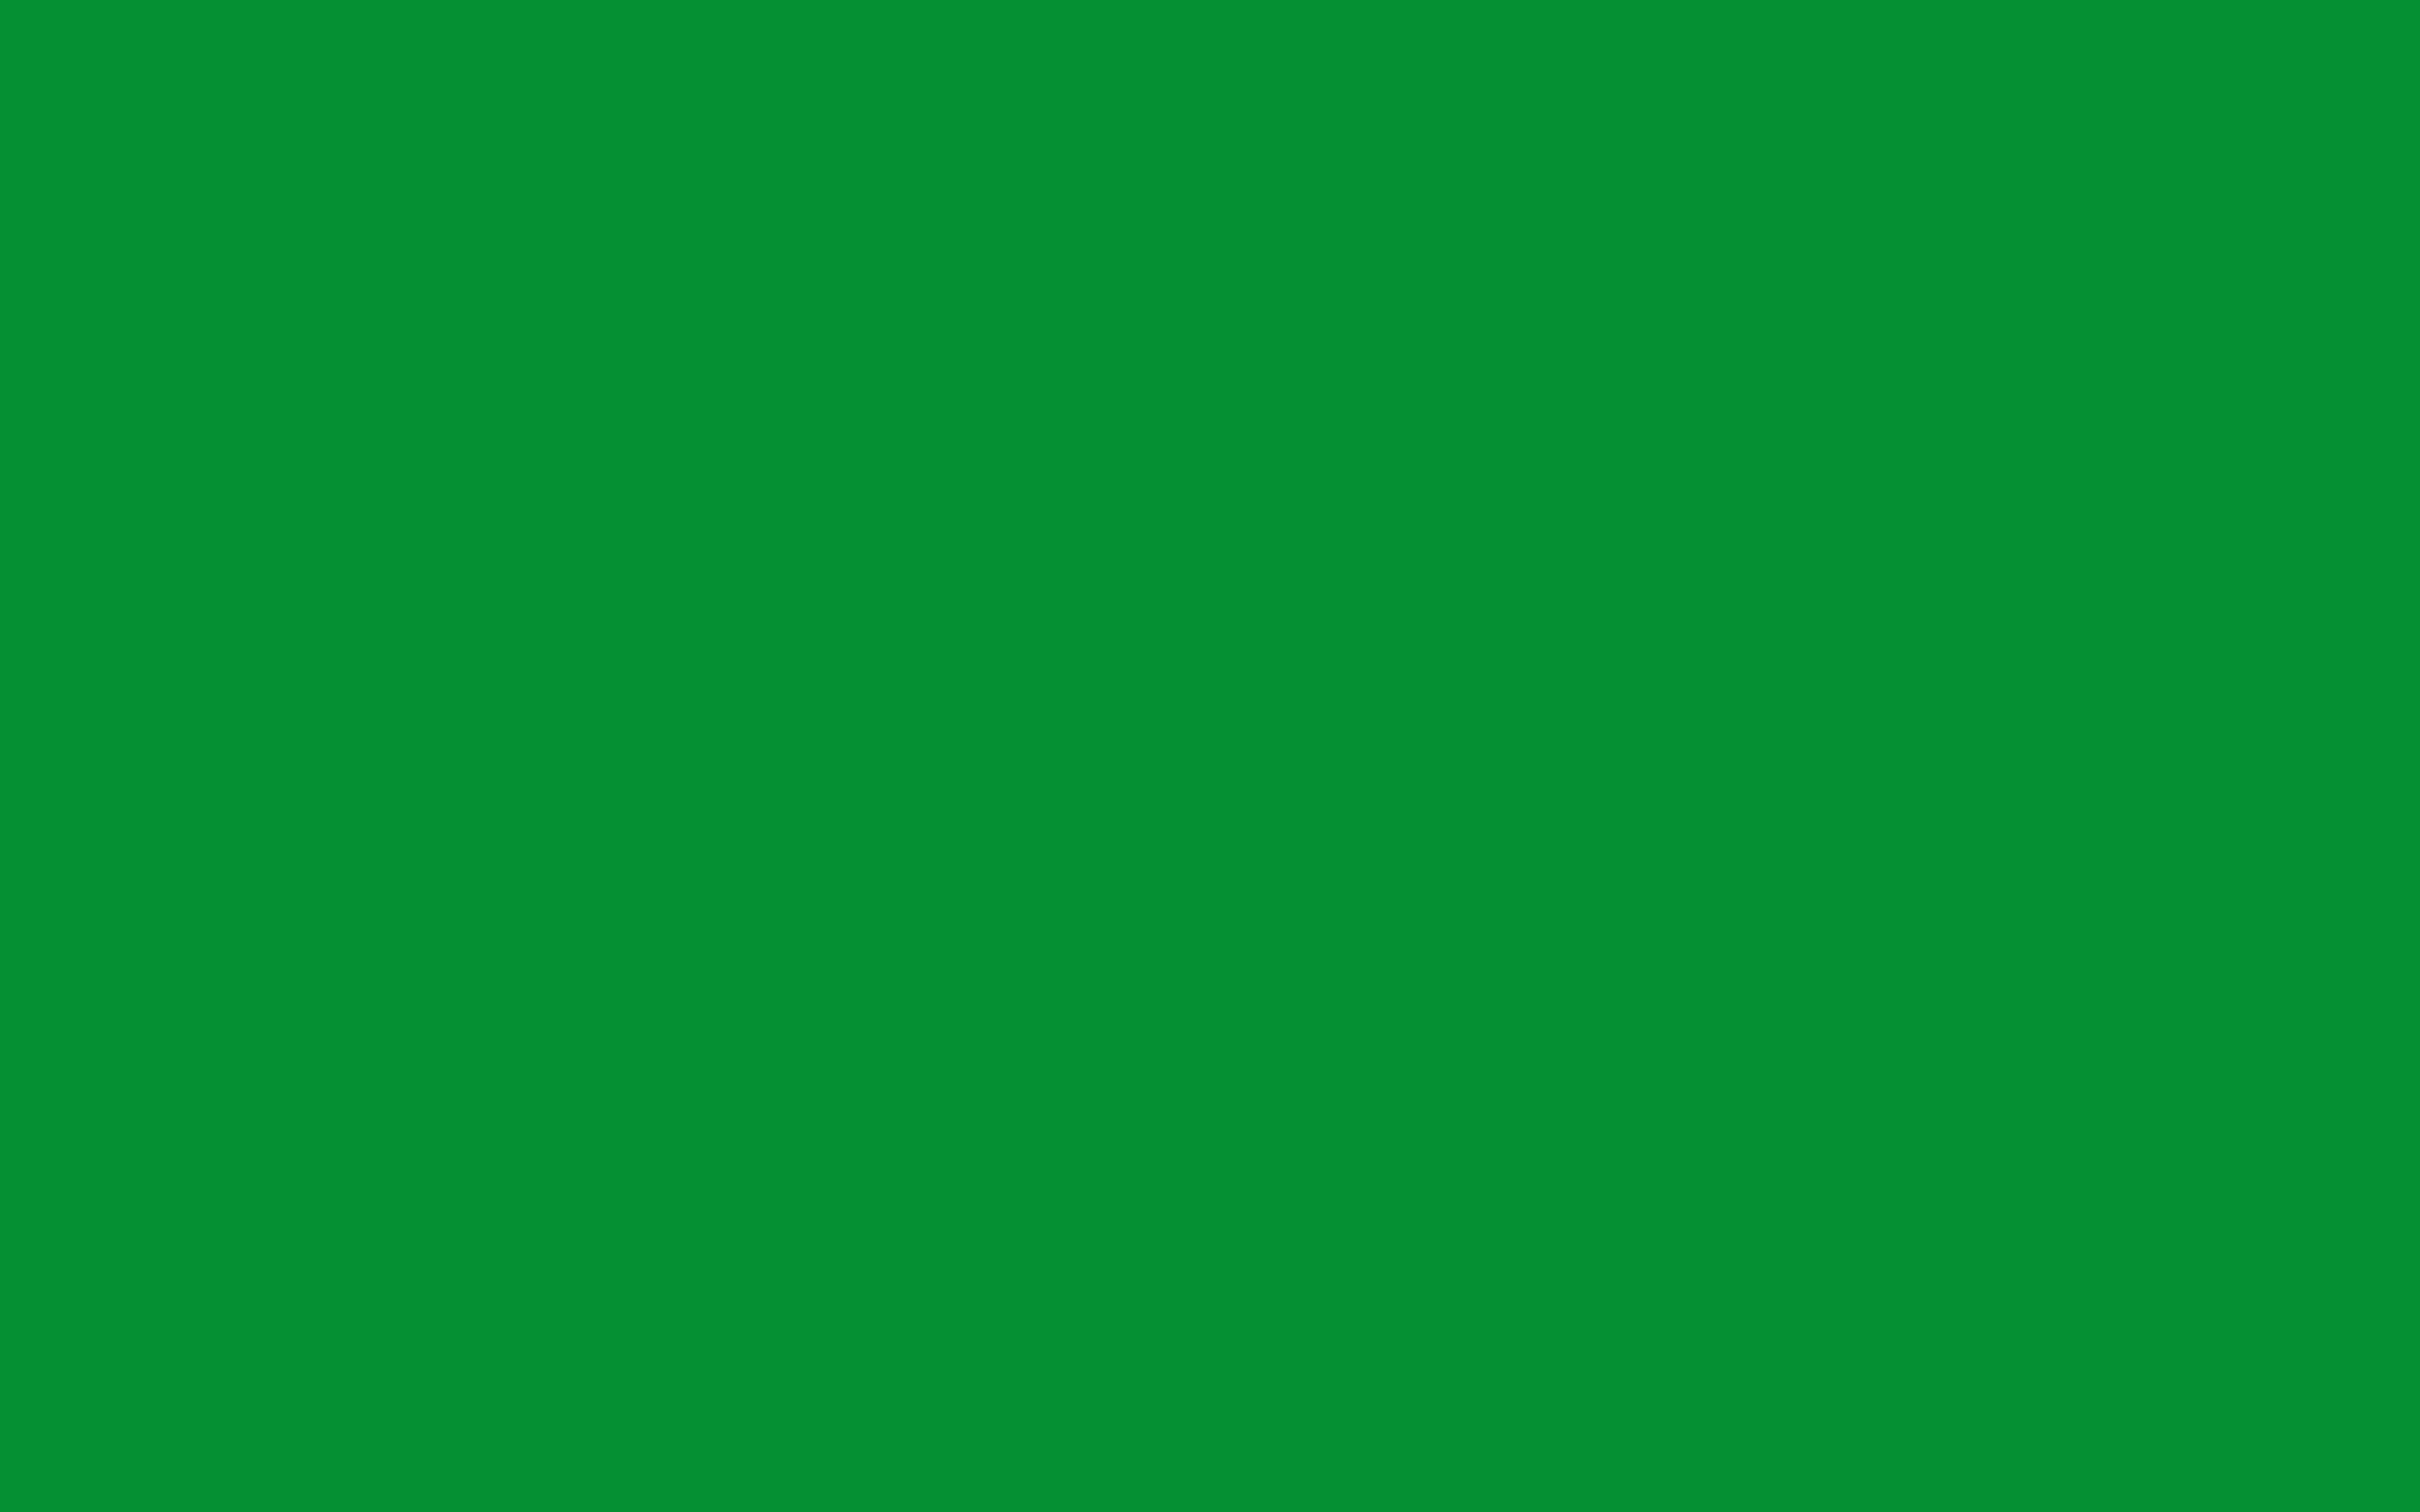 2560x1600 North Texas Green Solid Color Background